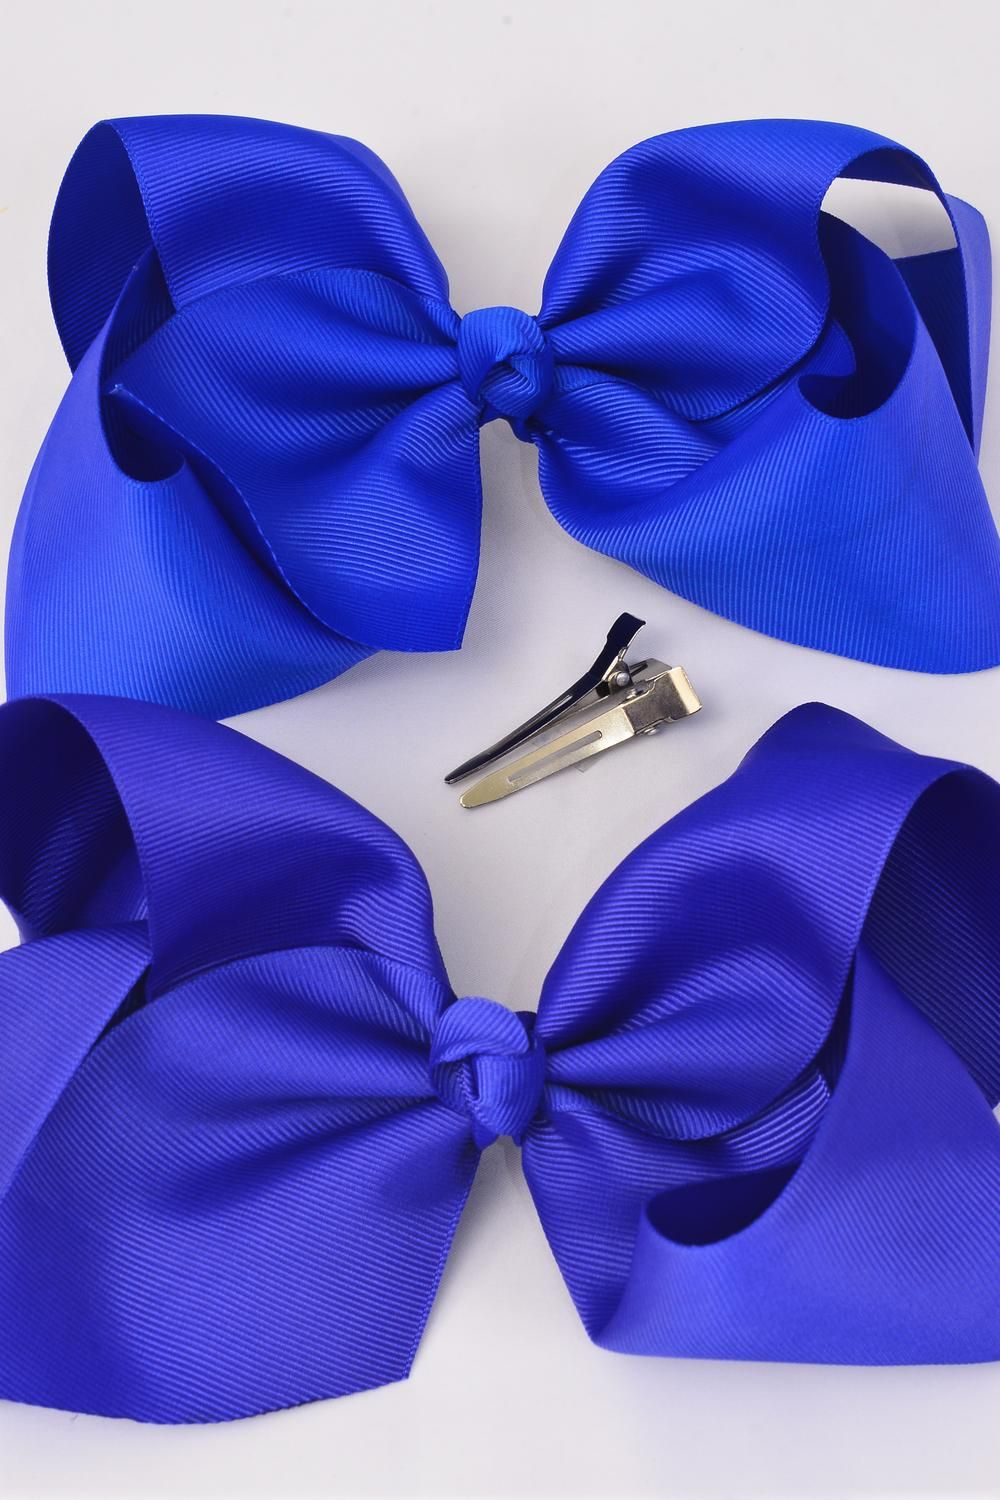 "Hair Bow Cheer Type Bow Alligator Clip Grosgrain Fabric Bow-tie Royal Blue Mix/DZ **Royal Blue Mix** Size-8""x 7"" Wide,Alligator Clip,6 of each Color Asst,Clip Strip & UPC Code -"